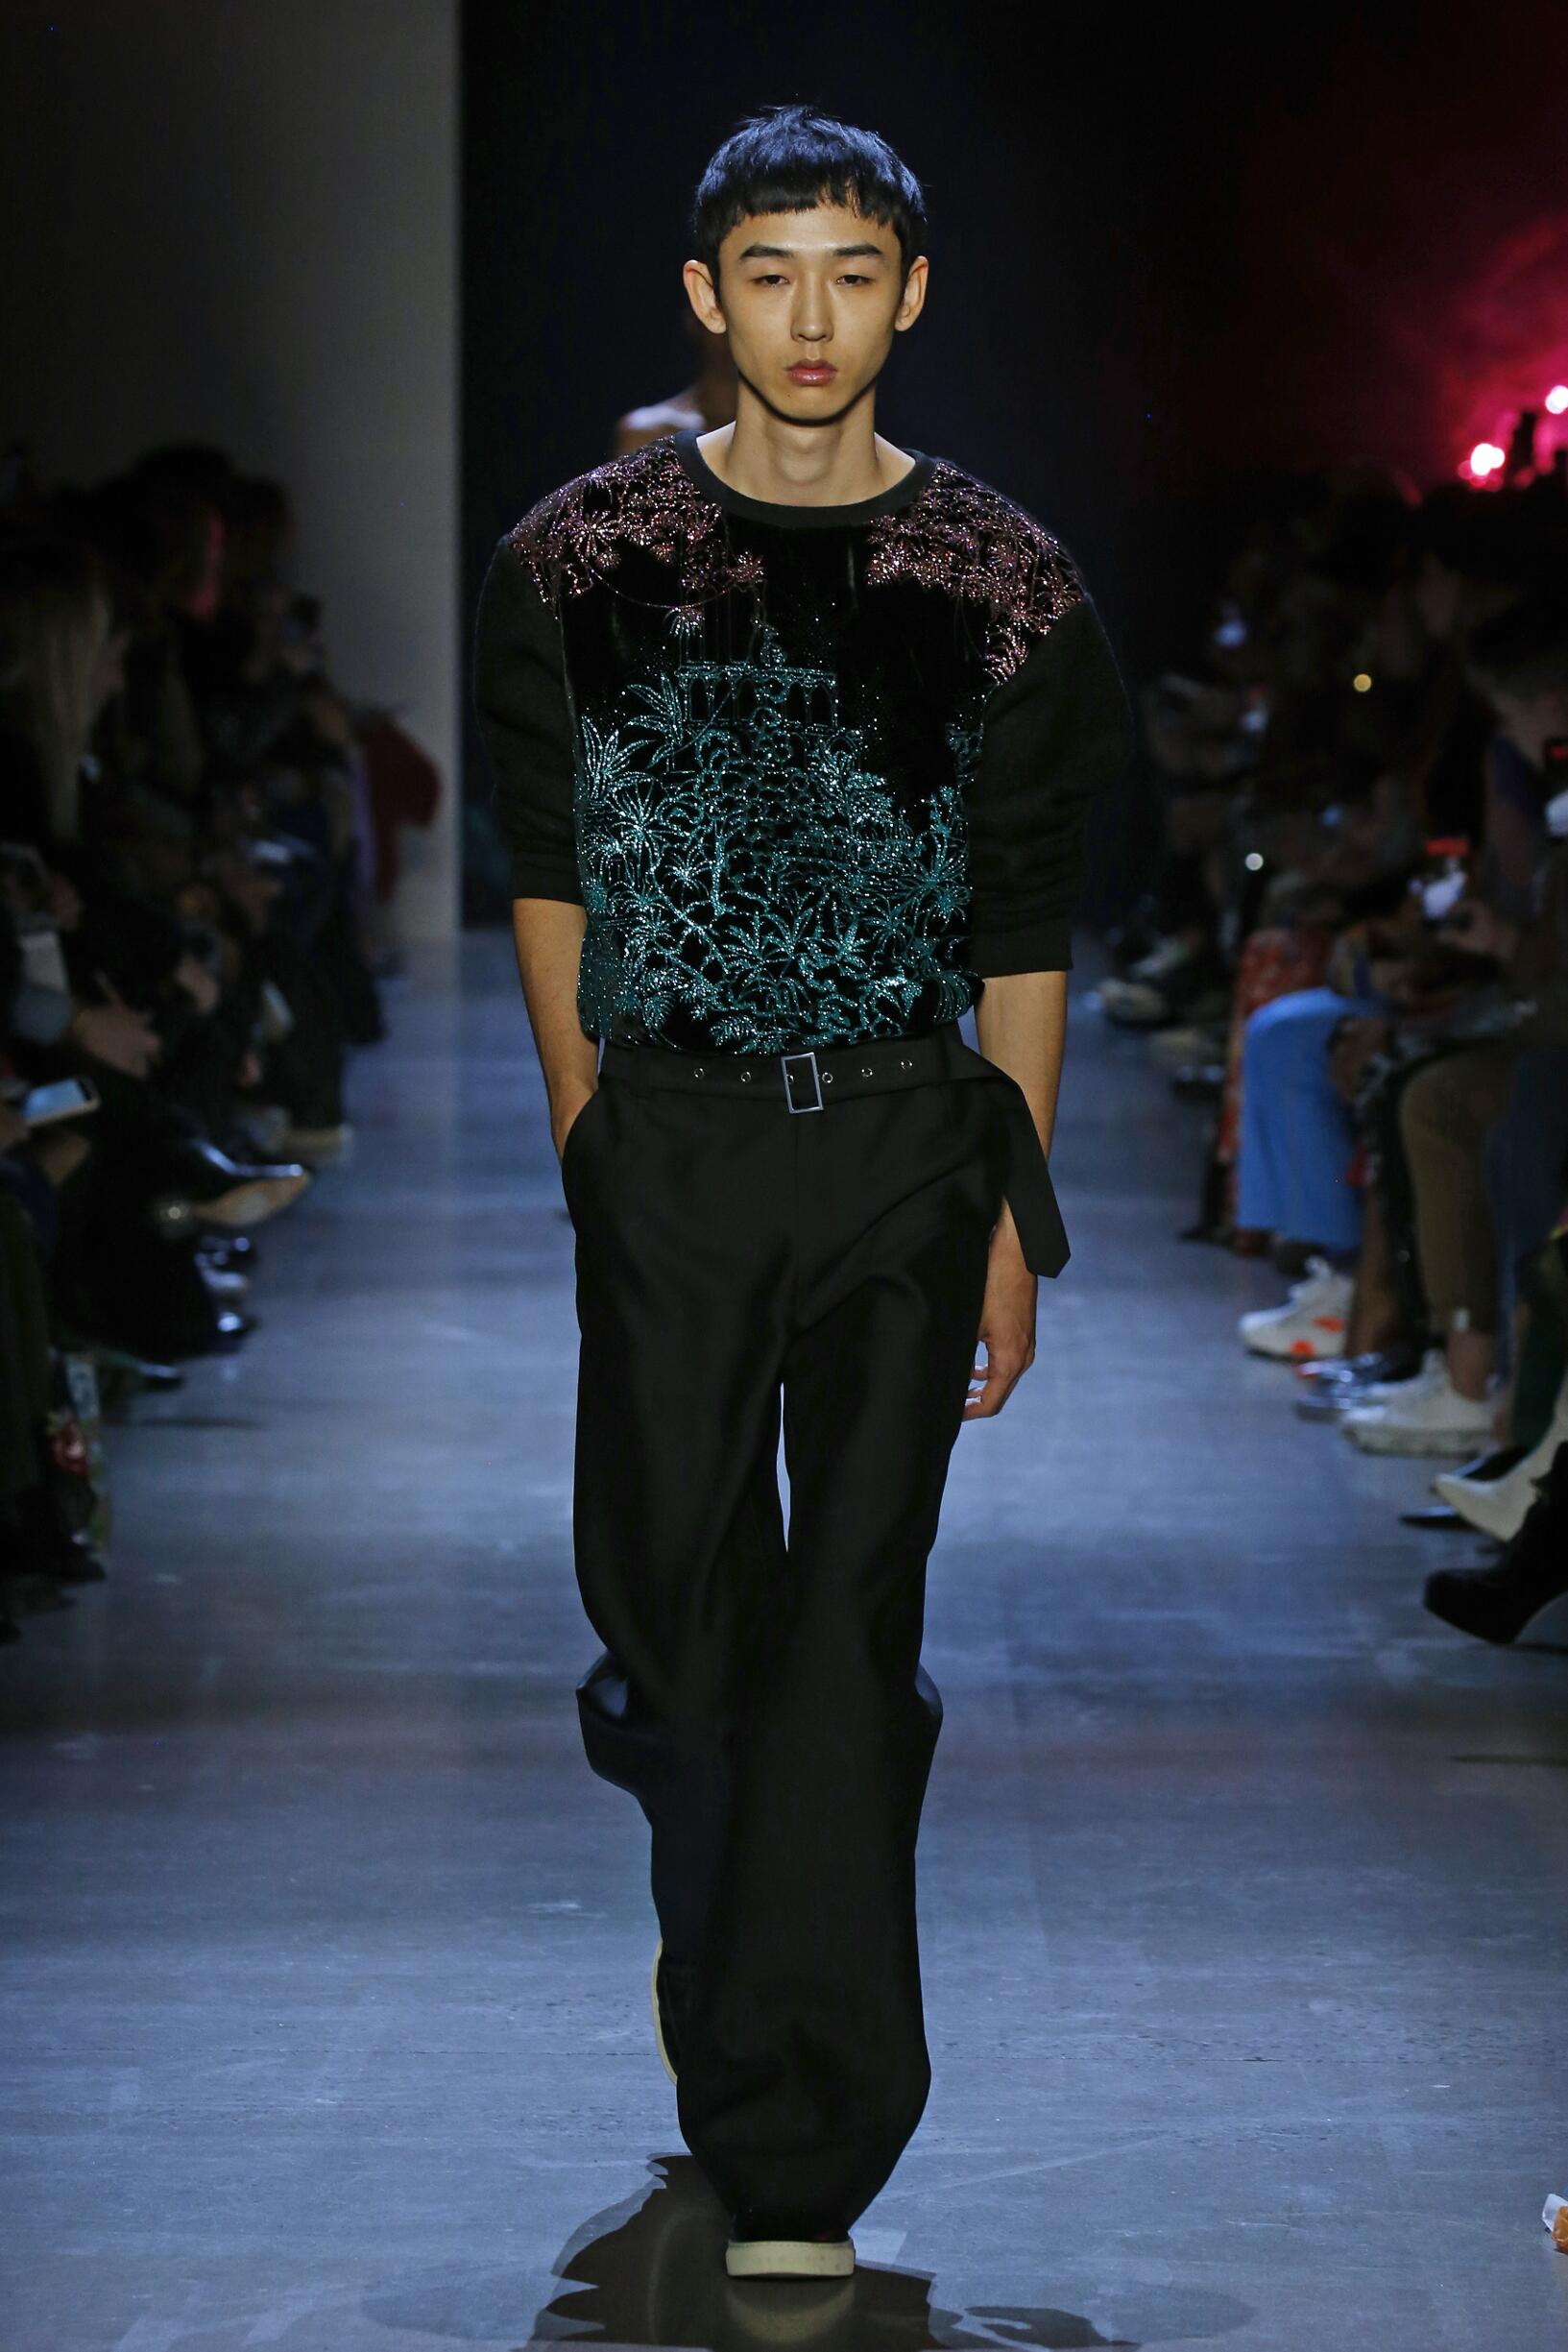 Prabal Gurung New York Fashion Week Menswear